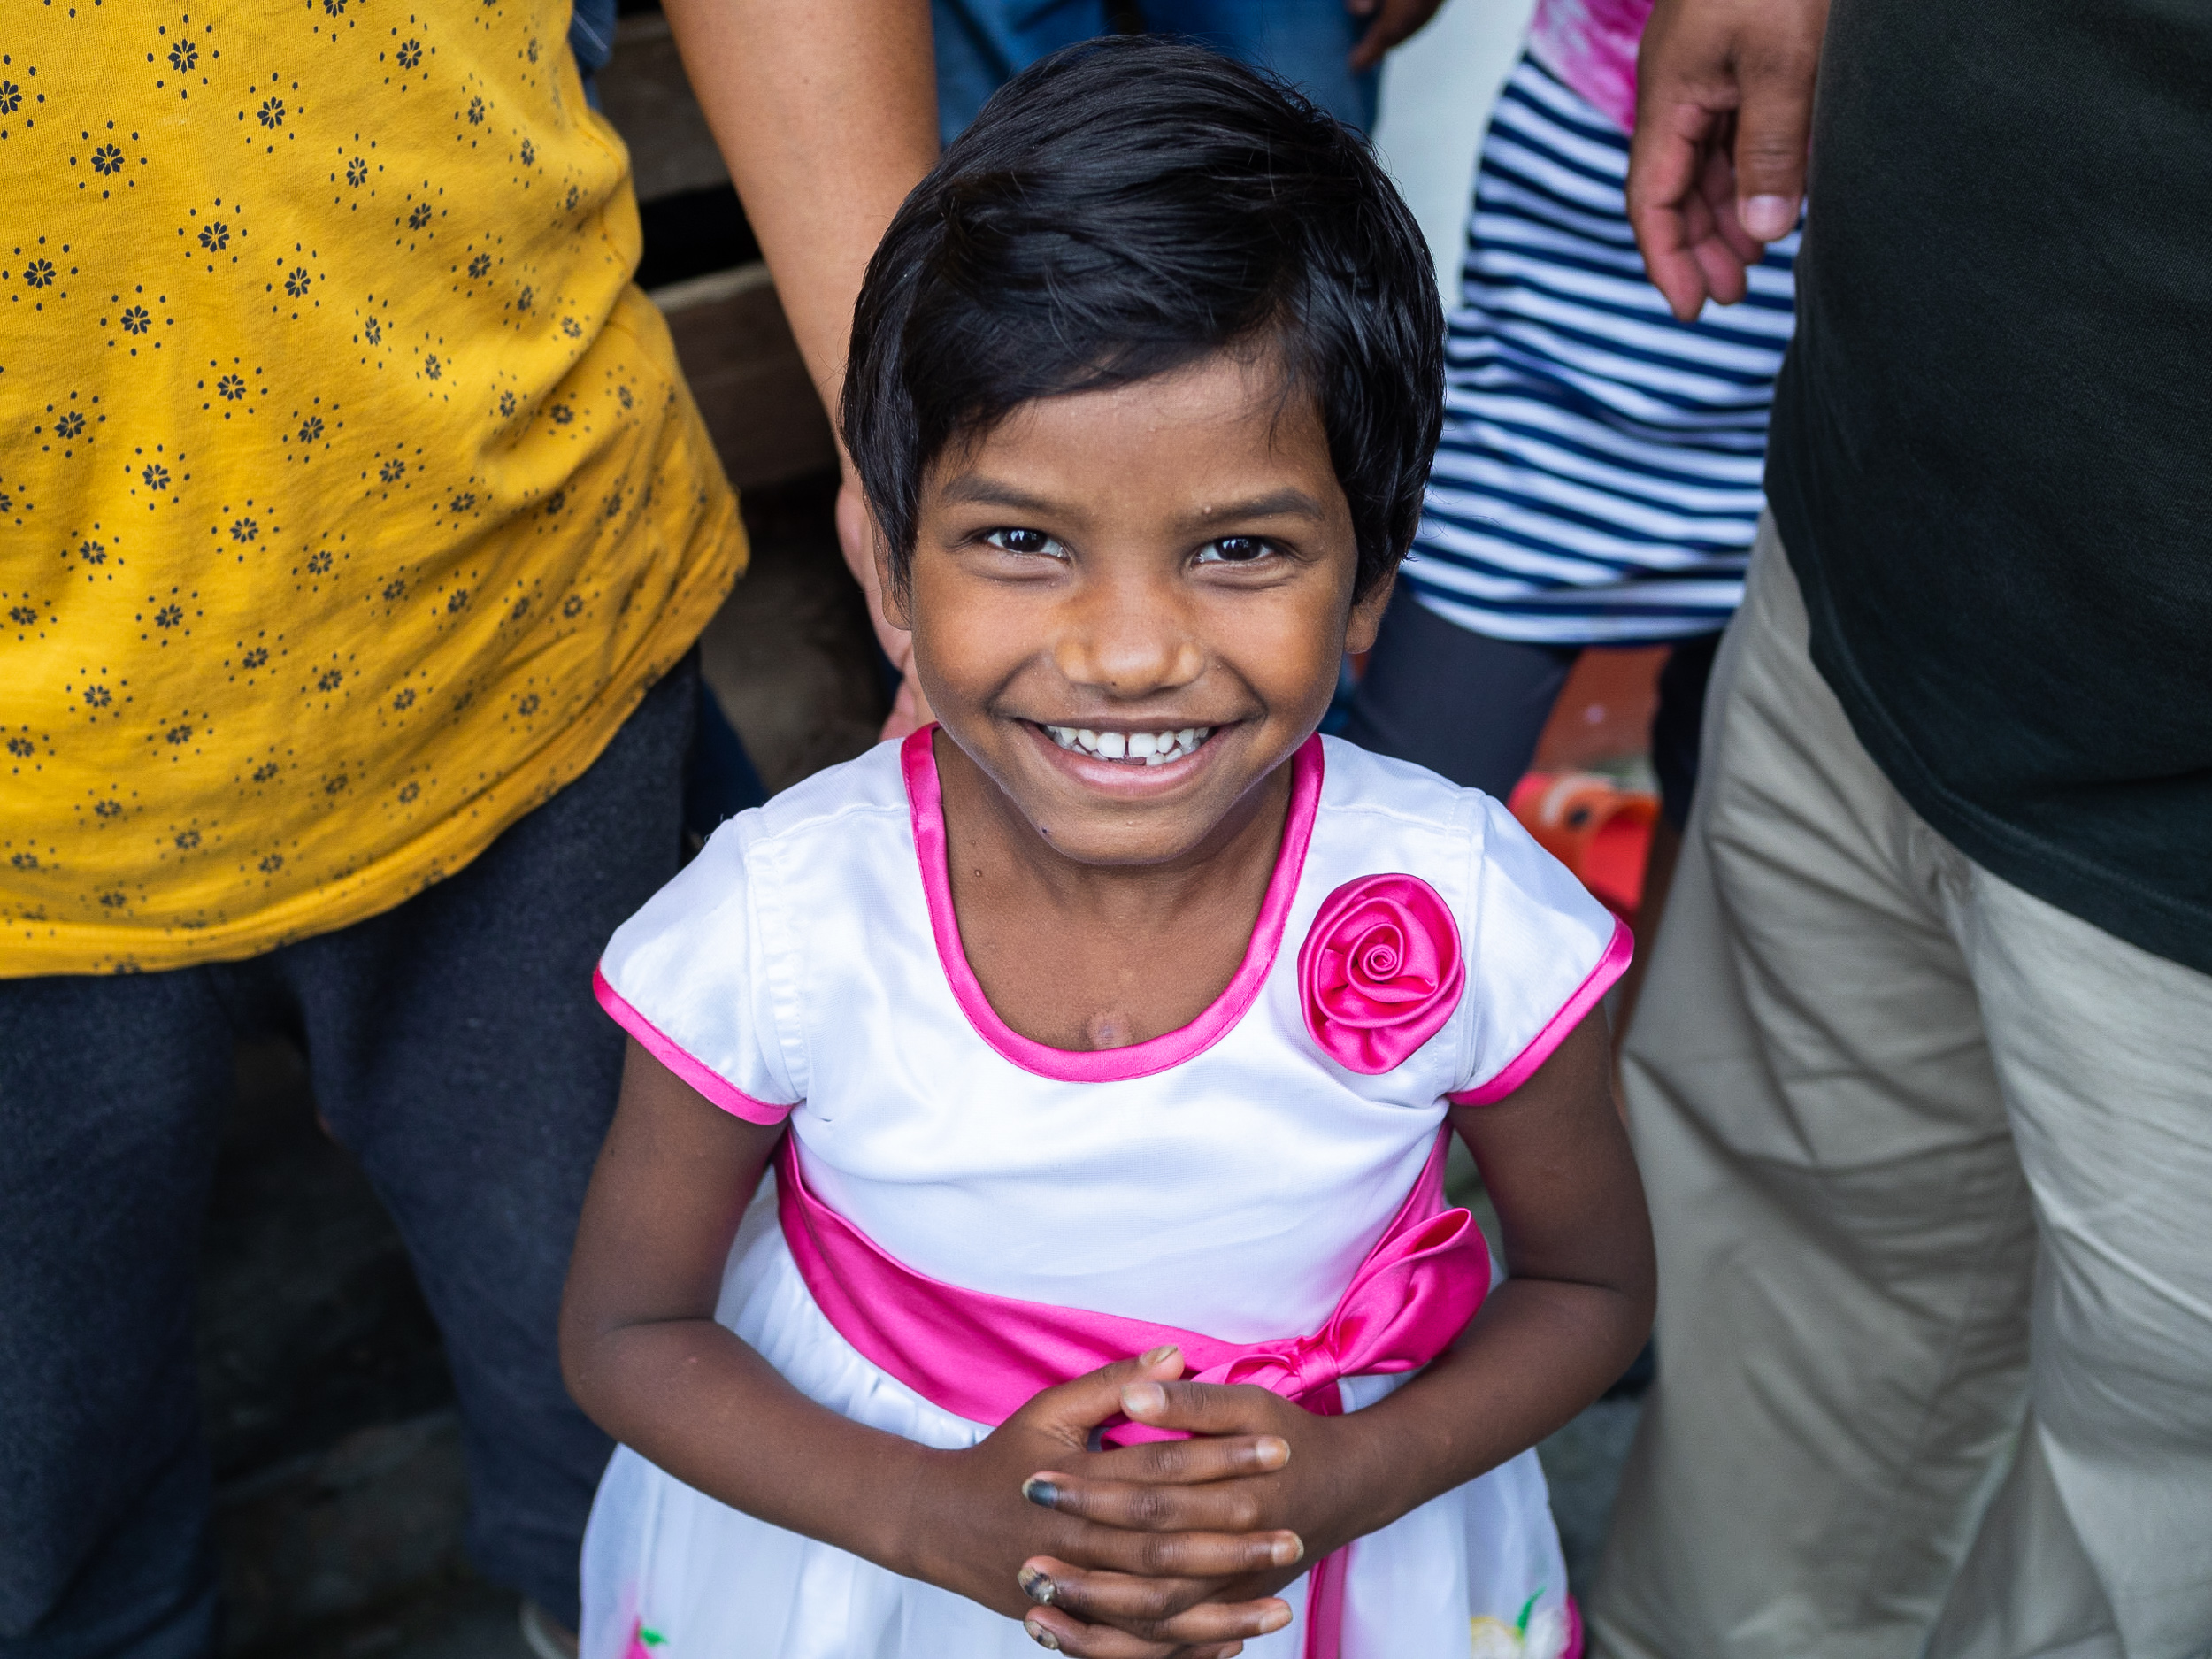 Our prayers were answered for little Sabina, whose dangerous open heart surgery was successful!